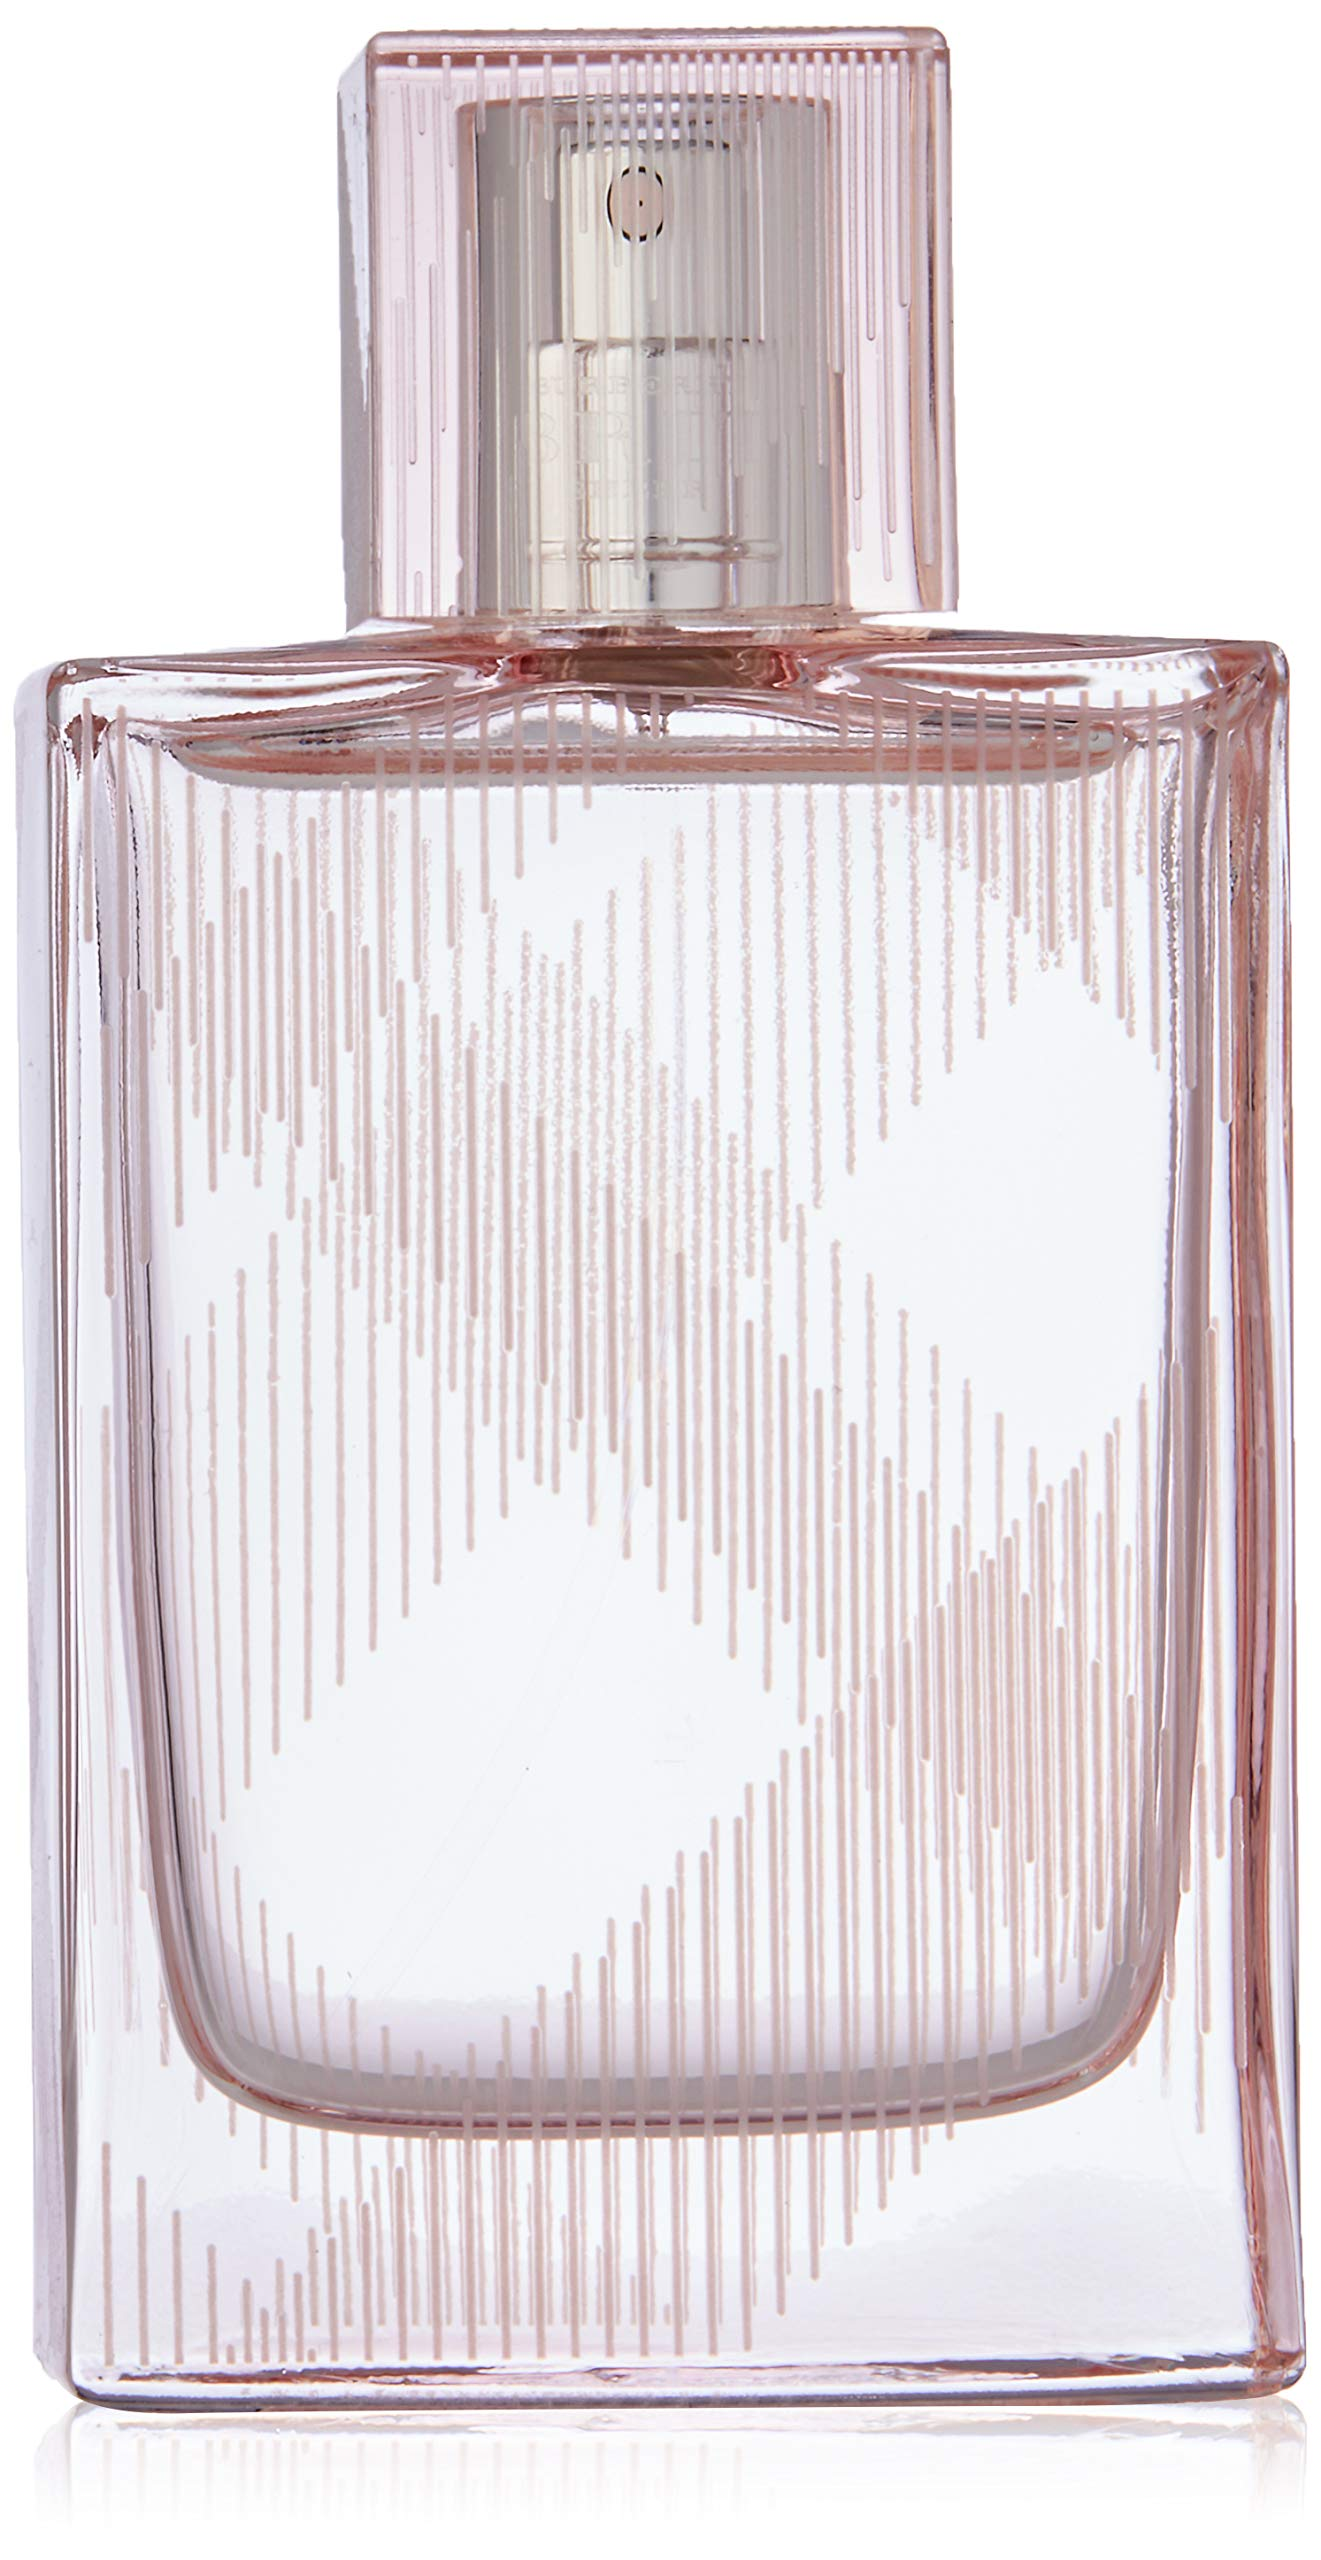 BURBERRY Brit Sheer Eau De Toilette For Her